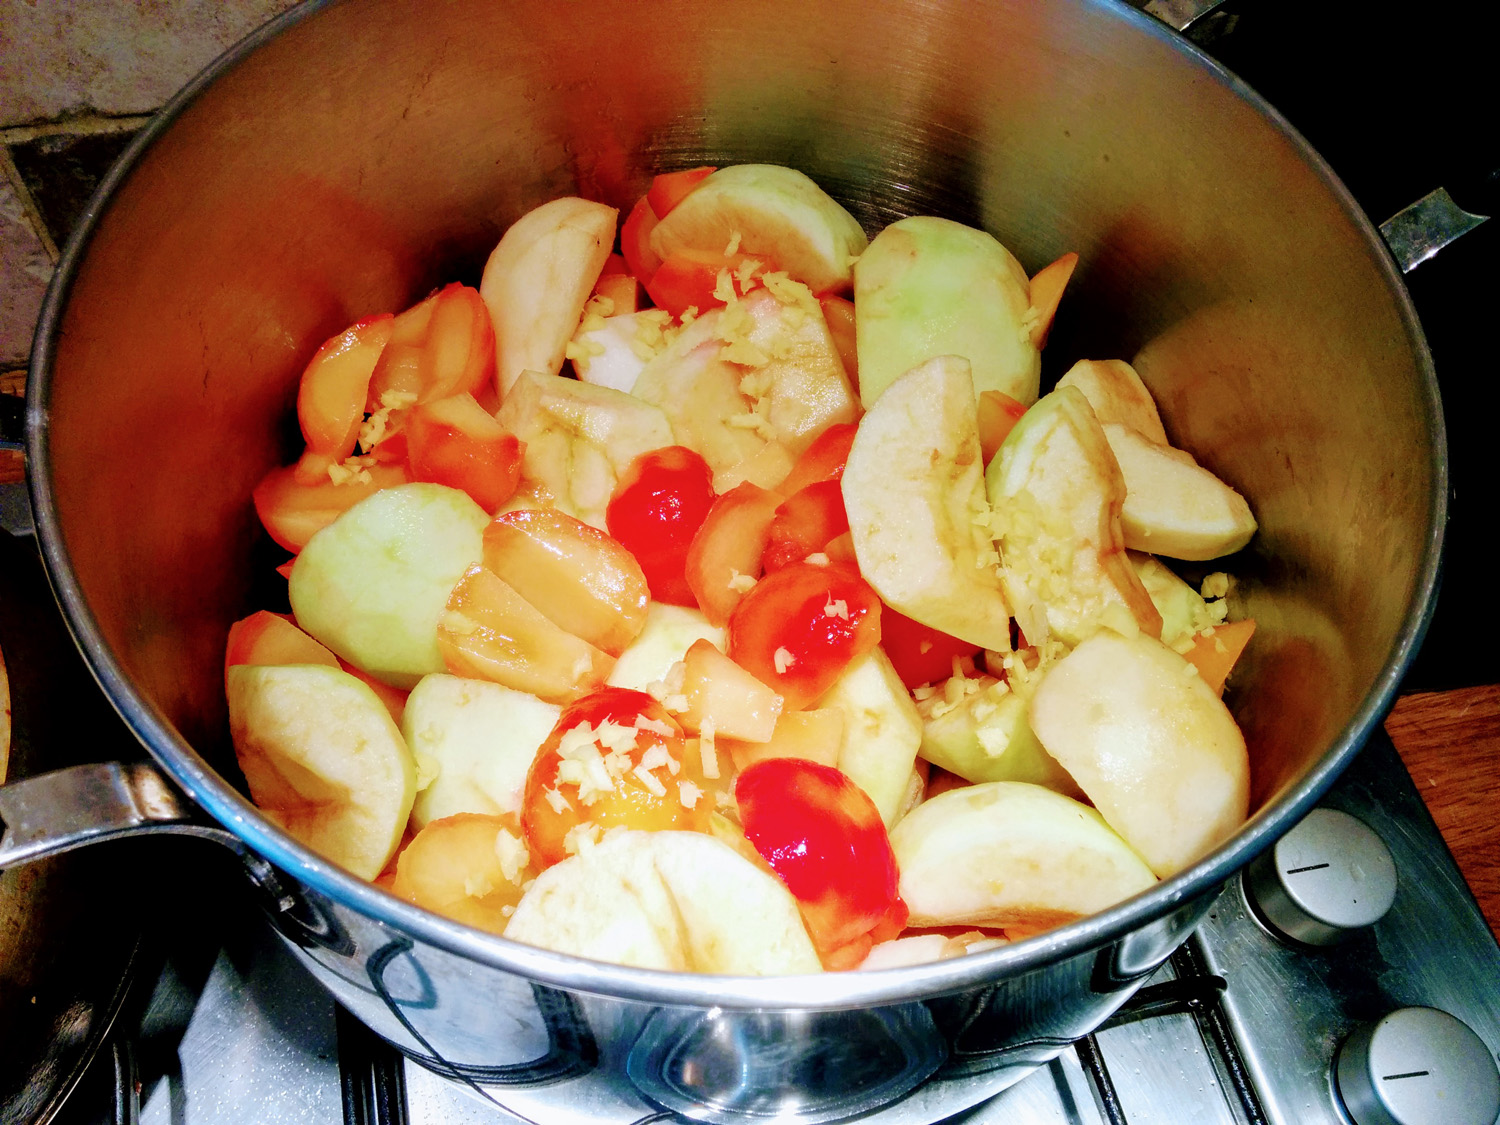 When I first put the fruit in the pan it looked like this.